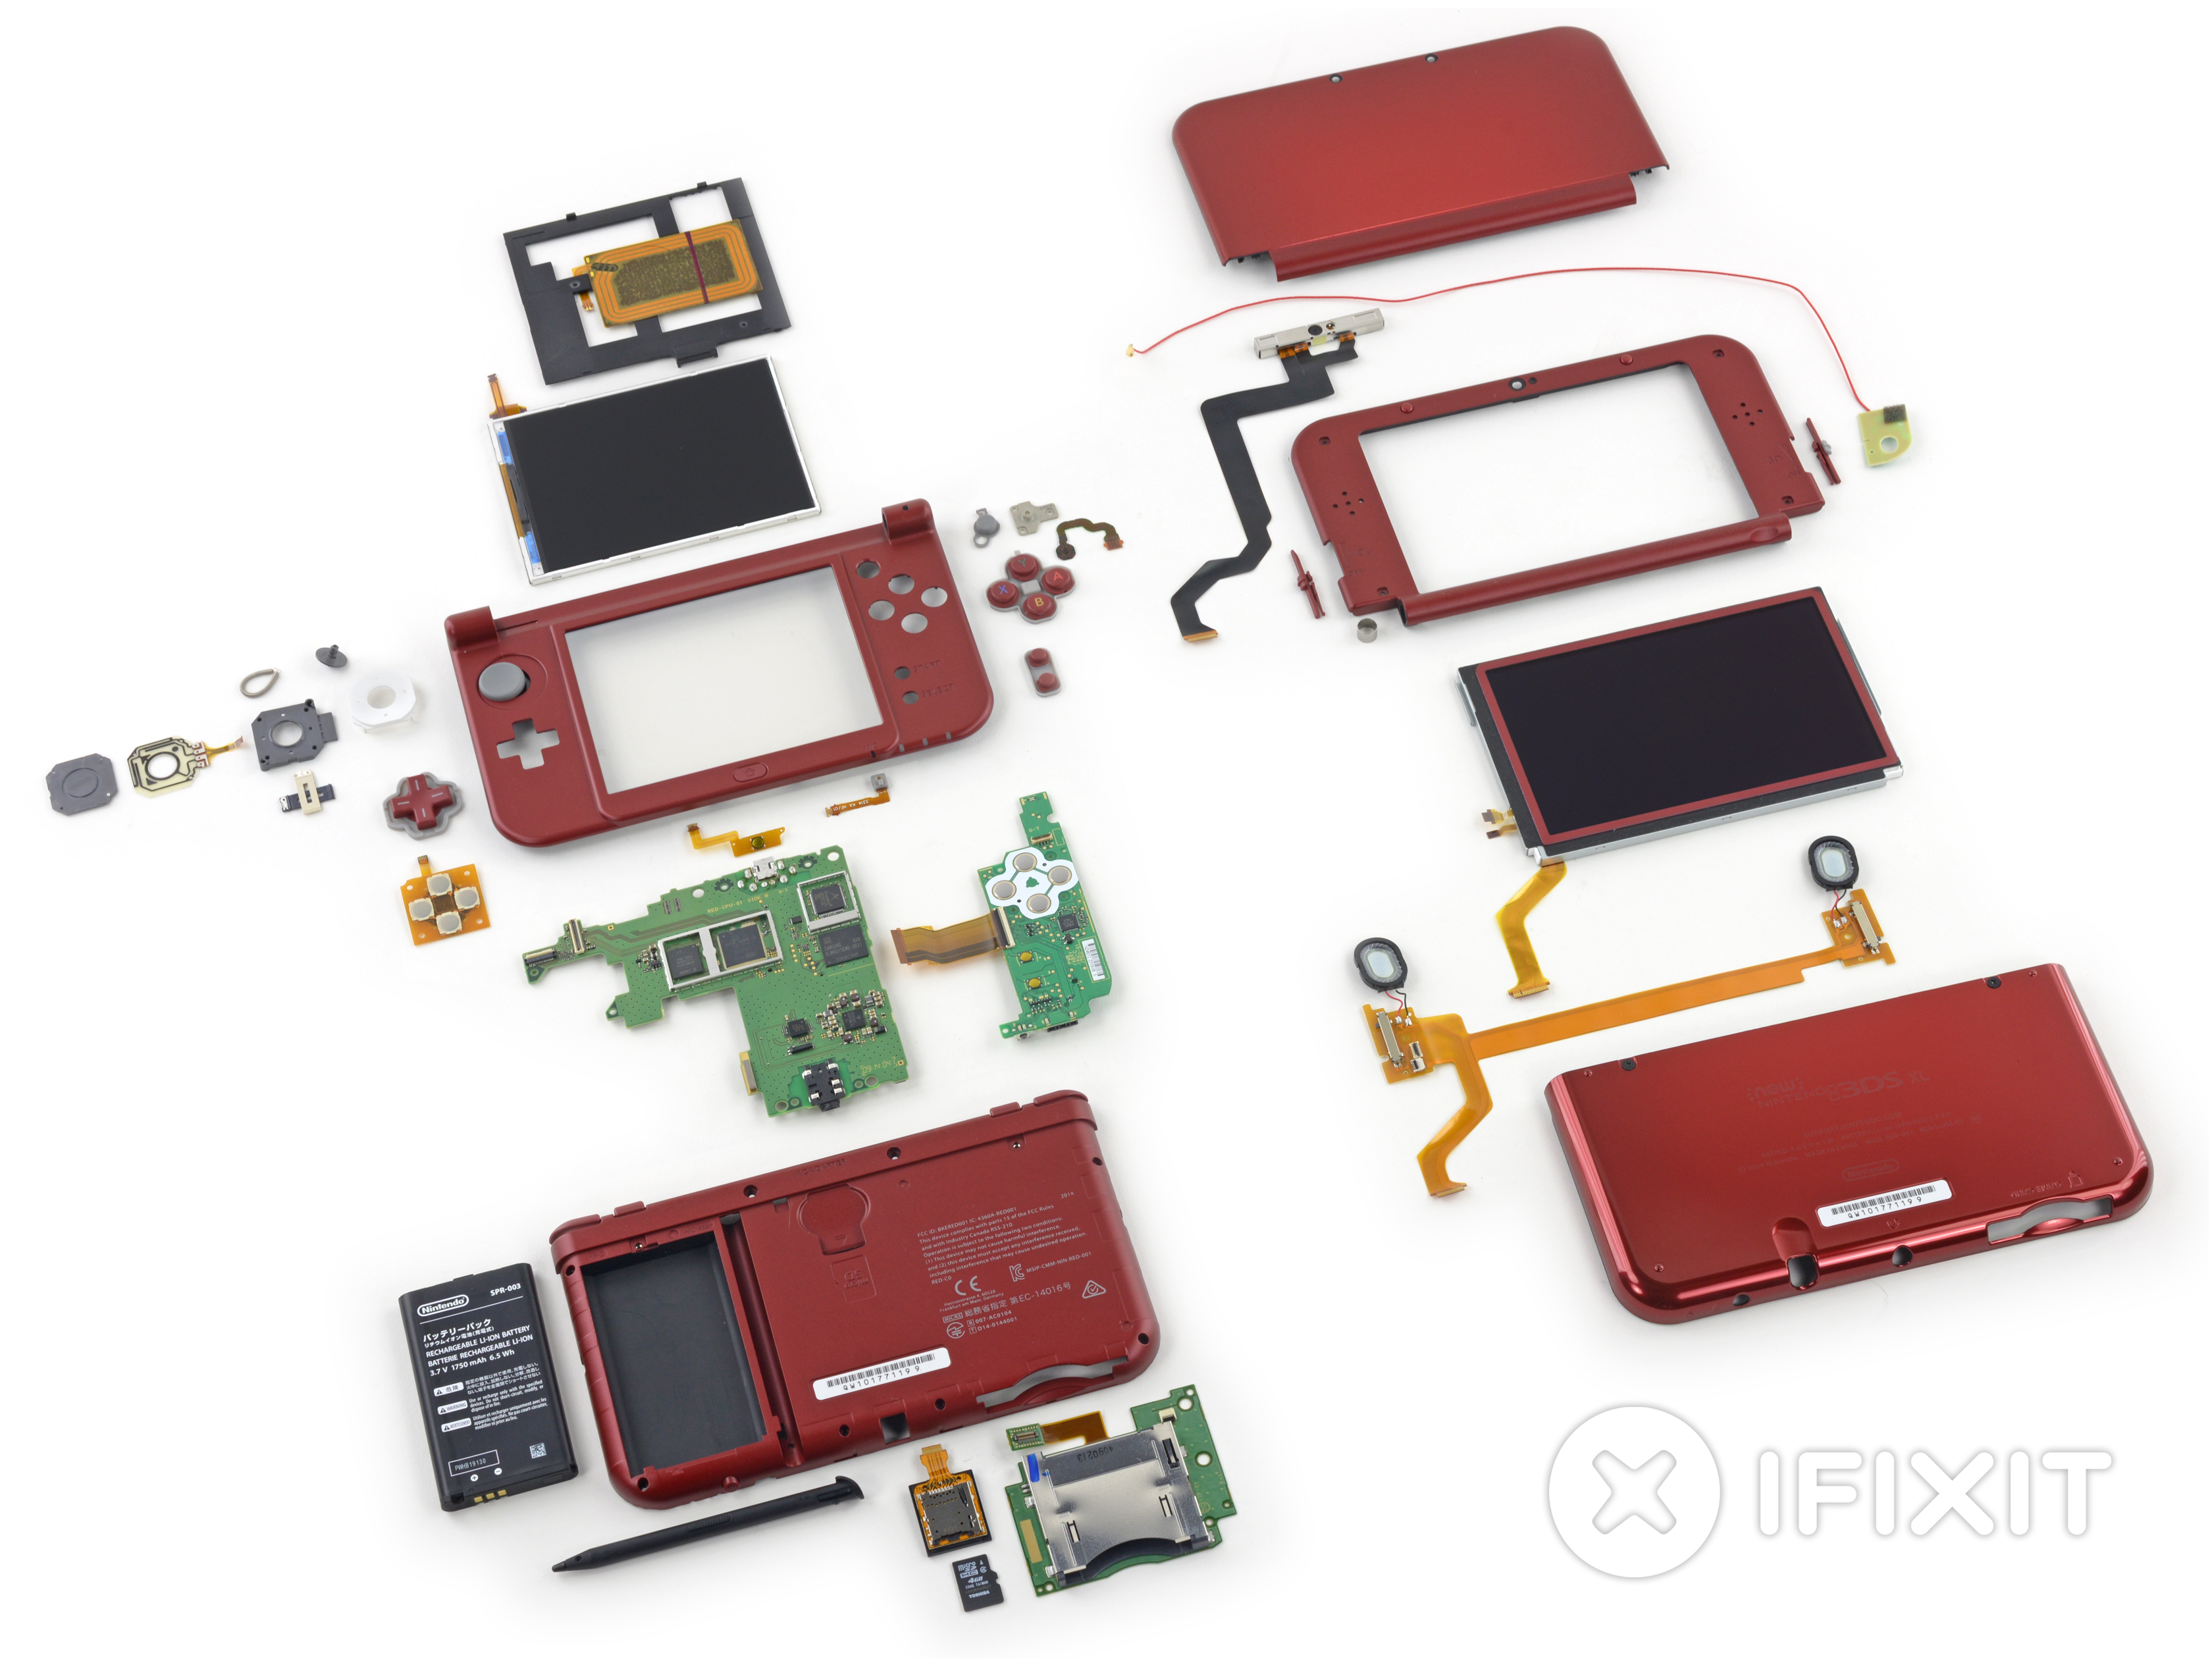 Nintendo 3ds Xl 2015 Teardown Ifixit Circuit Board To Hold Your Memories This Creative Photo Frame Is